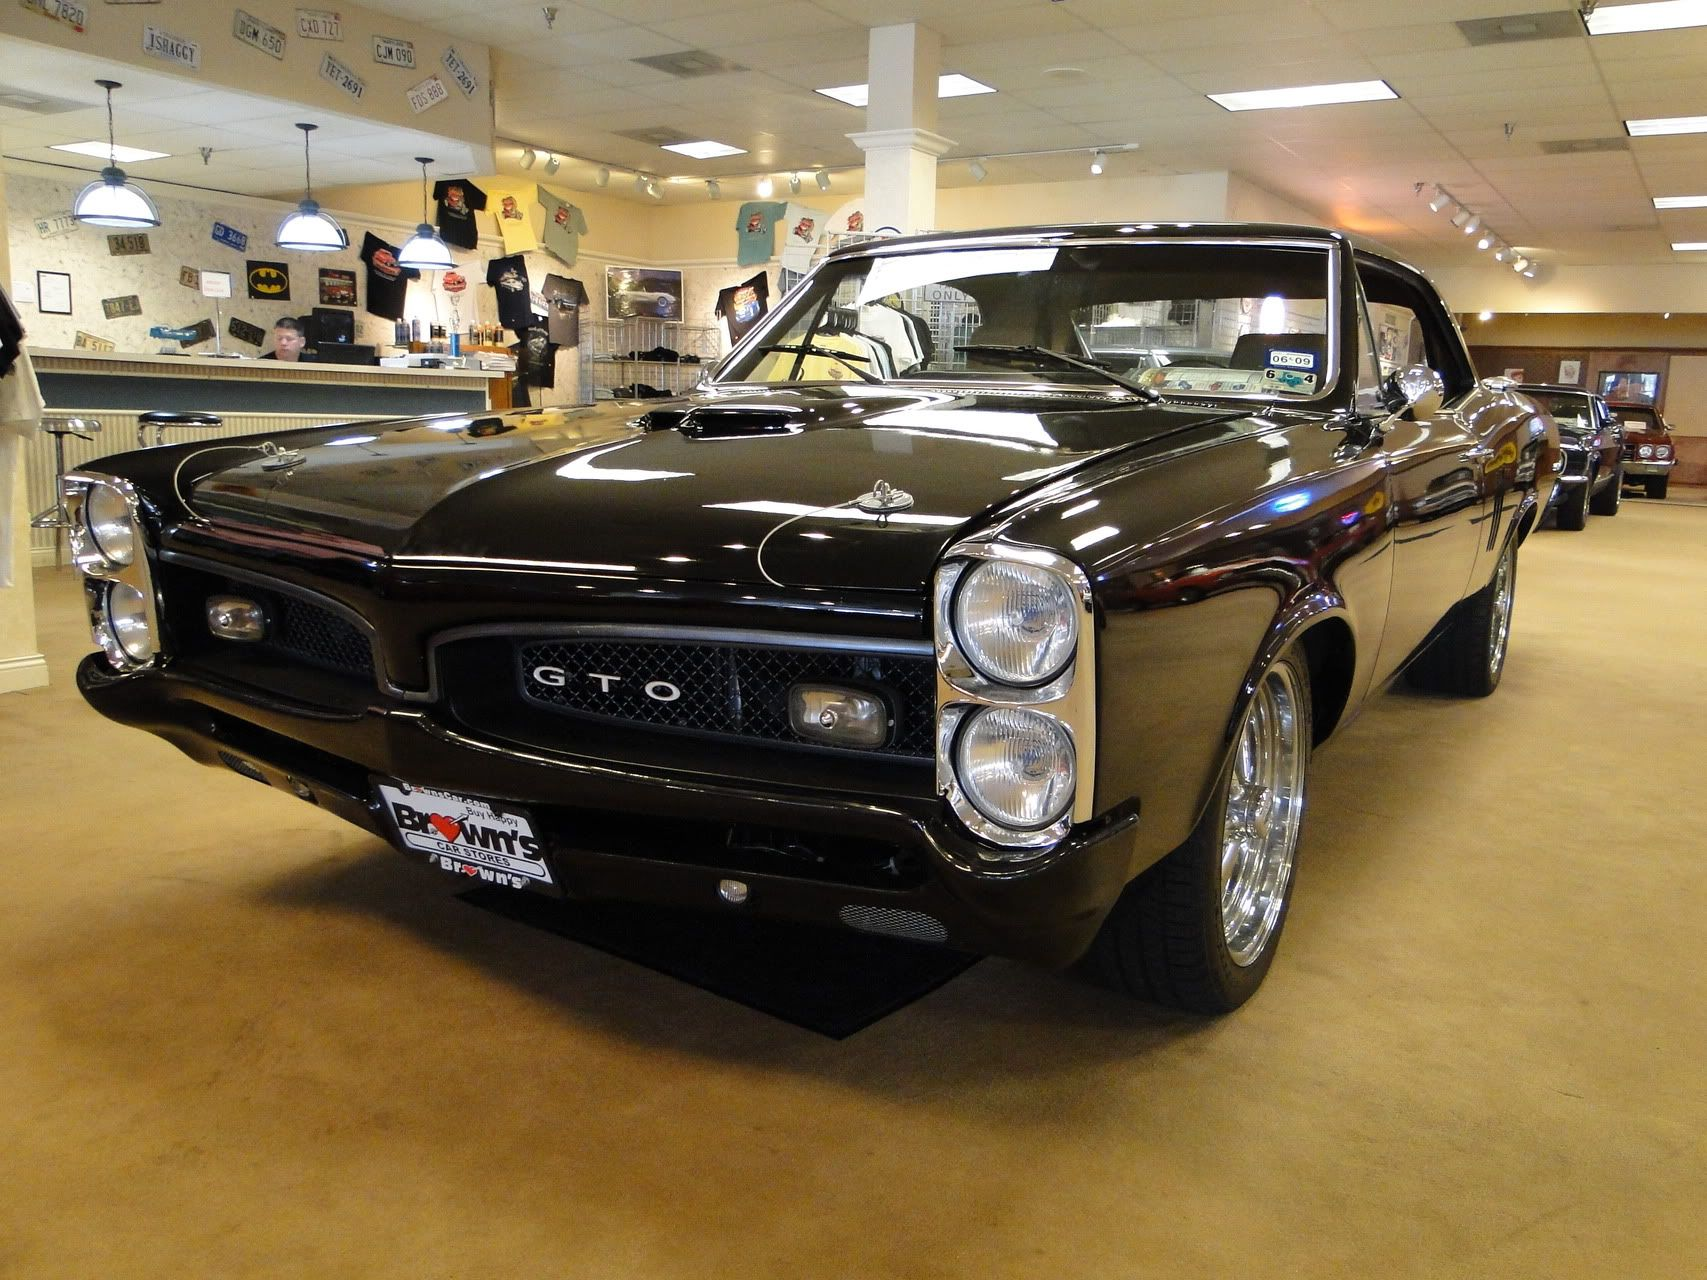 Used 1967 Pontiac GTO Tribute Pro-Touring Sold to MO For Sale ...